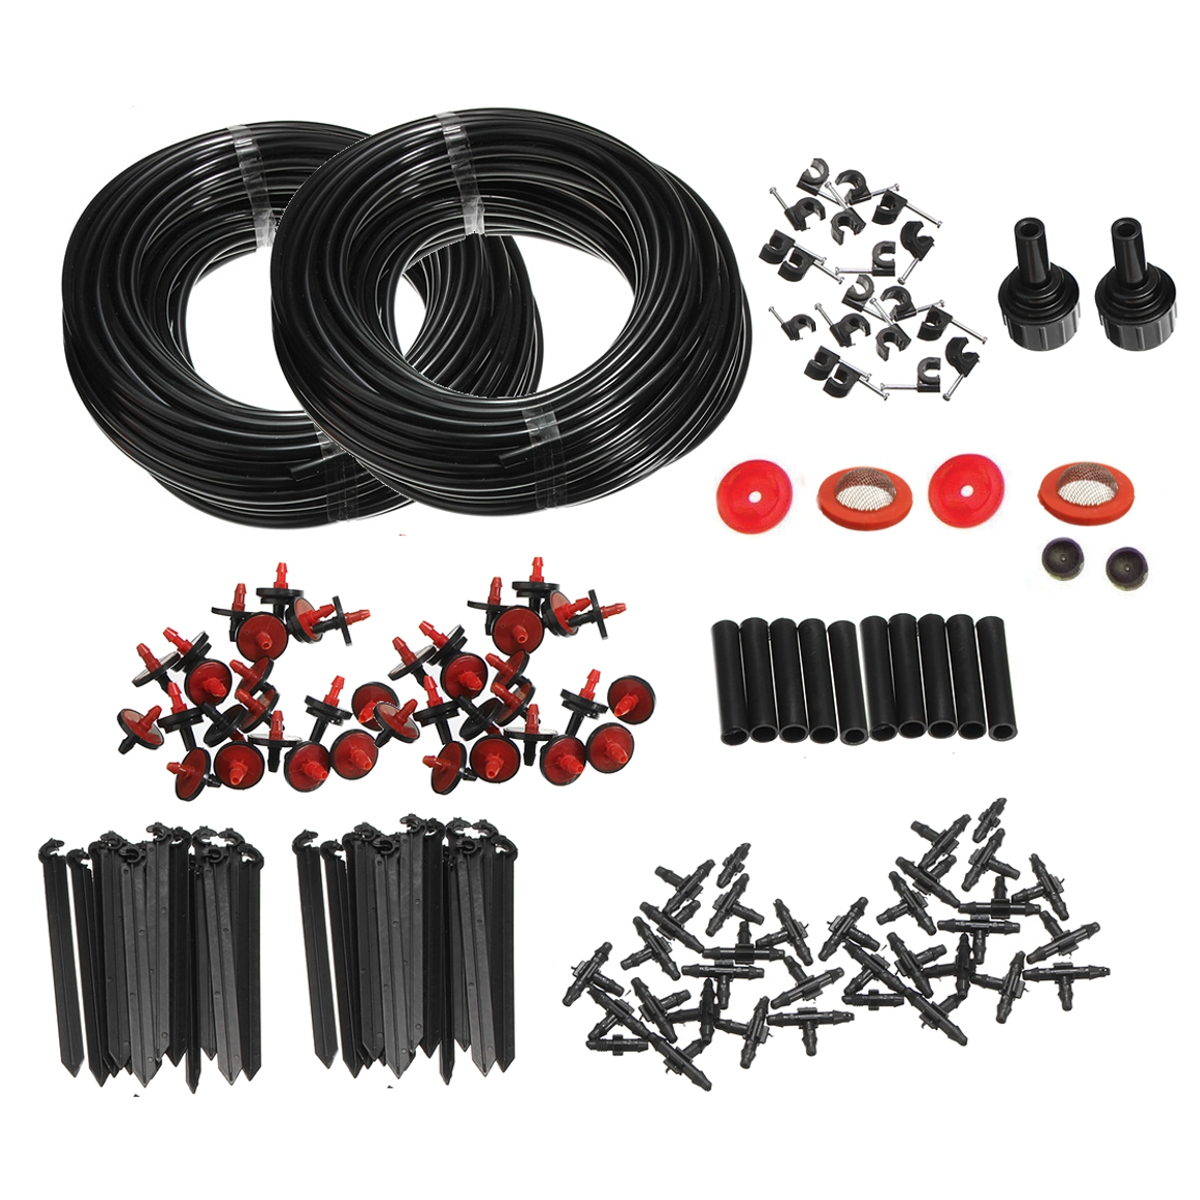 150FT Automatic Micro Drip Irrigation System Plant Self Watering Garden Hose Kits For Home Garden Hanging Basket Plant Flower